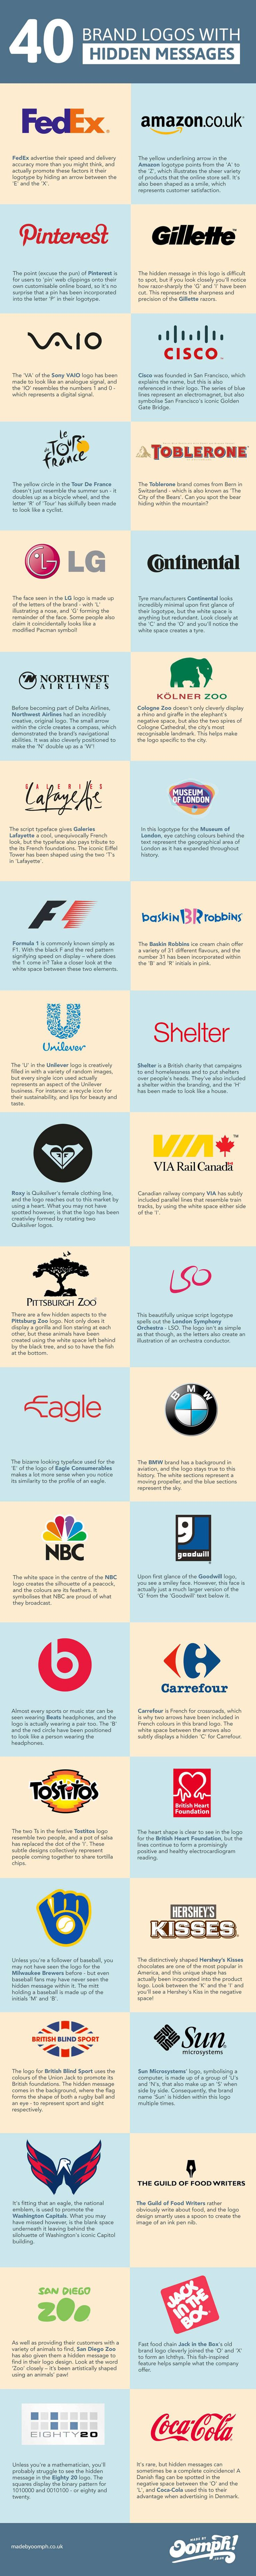 "40 Brand Logos with Hidden Messages | StockLogos.com -- Can't get too much of the classic ""hidden message in the logo"" infographic. Or can we? #logo"